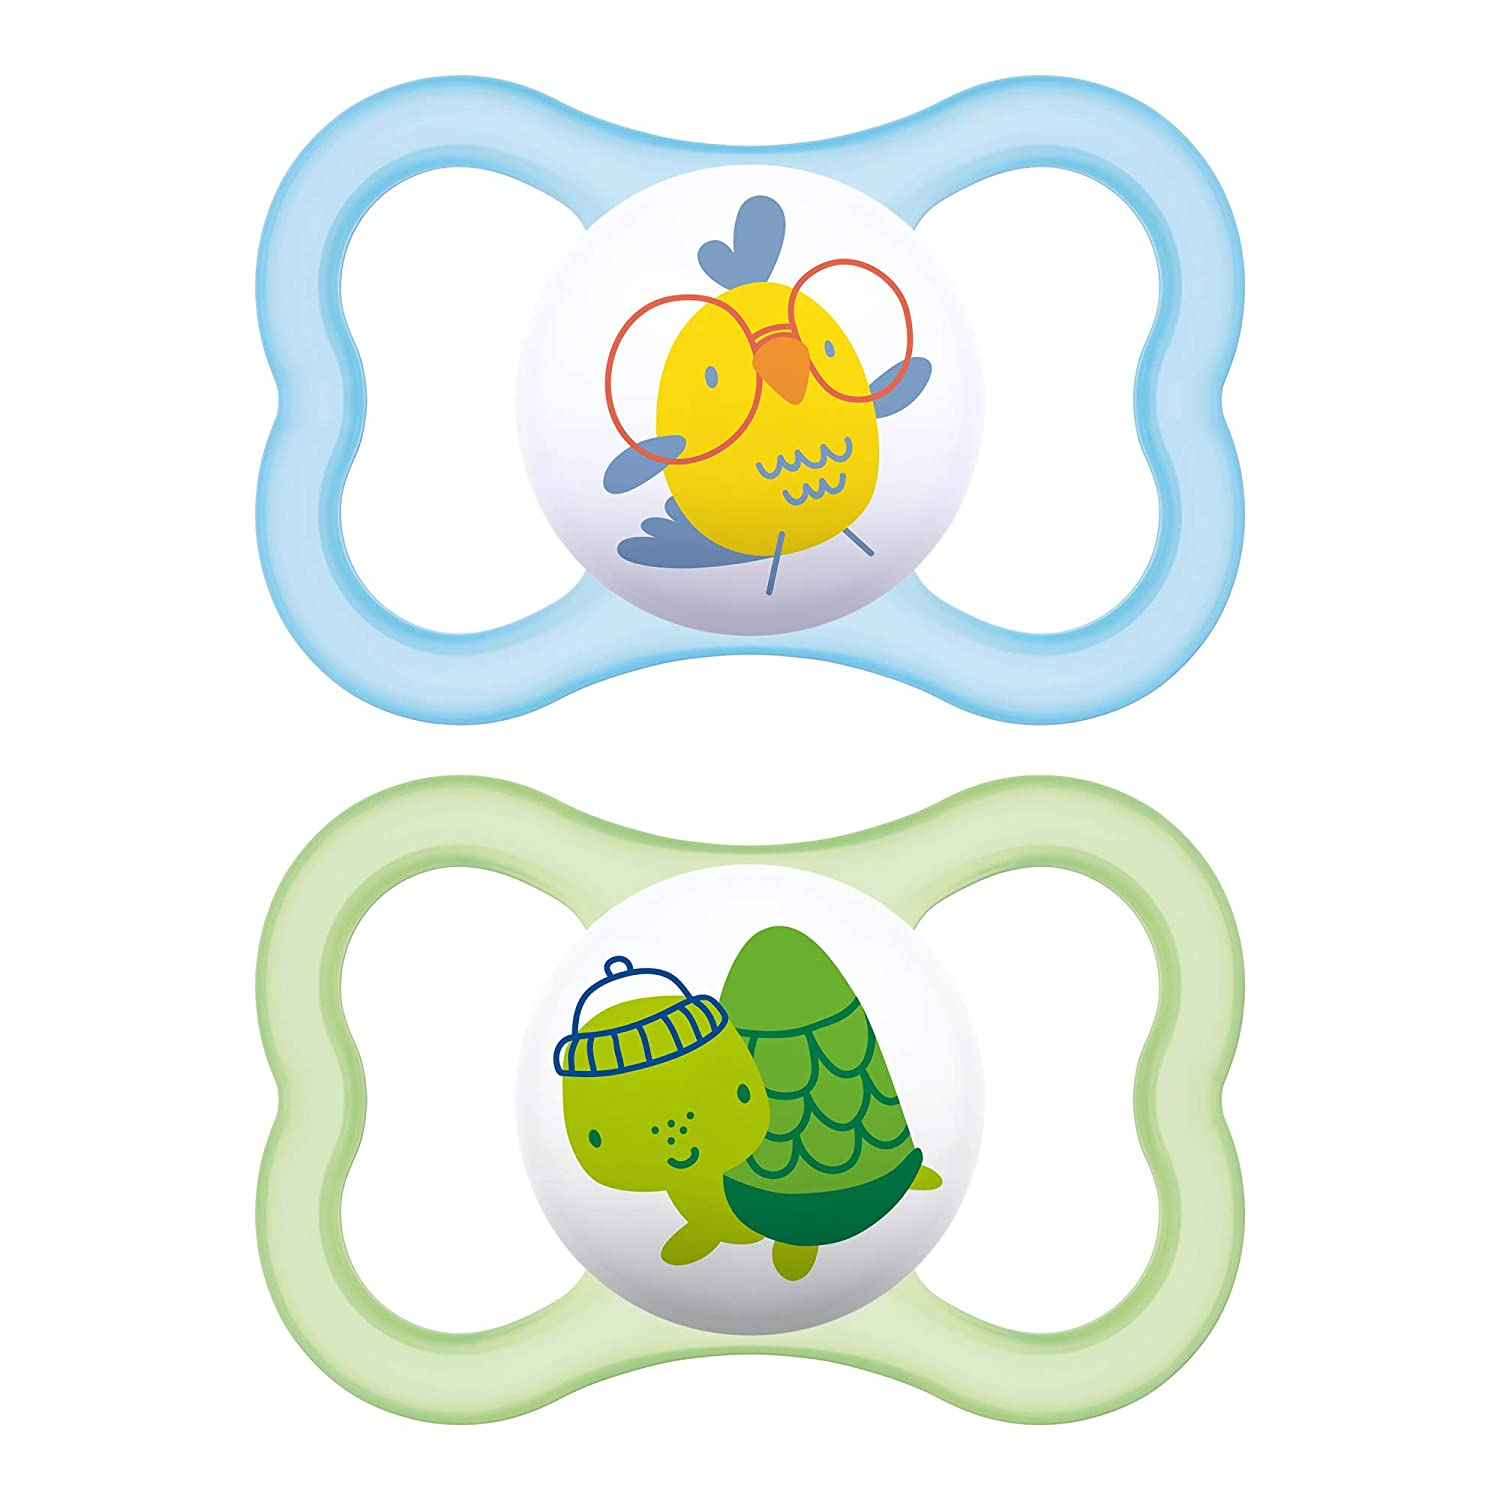 Unisex Air Night /& Day Design Collection Baby Pacifier 16+ Months MAM Sensitive Skin Pacifiers Best Pacifier for Breastfed Babies 3Count